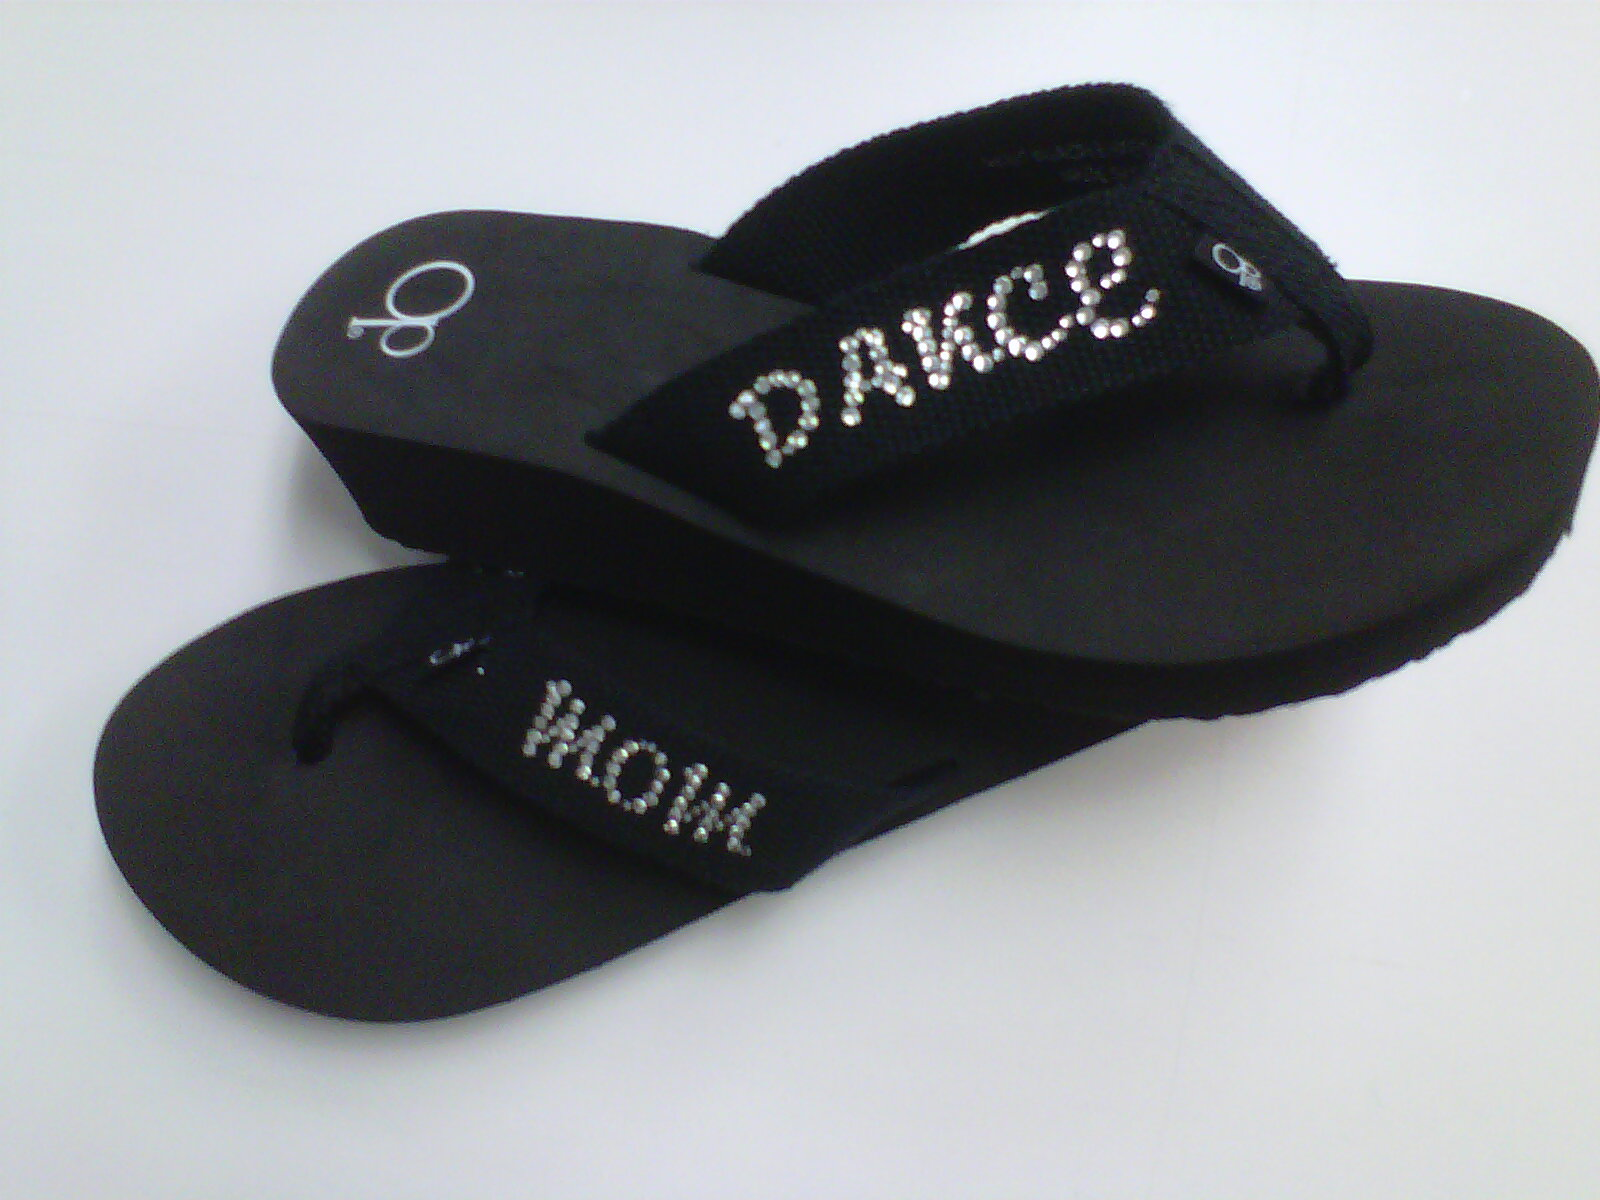 1ebdf799d Rhinestone Dance Mom Flip Flops · One Stop T-Shirts and More ...